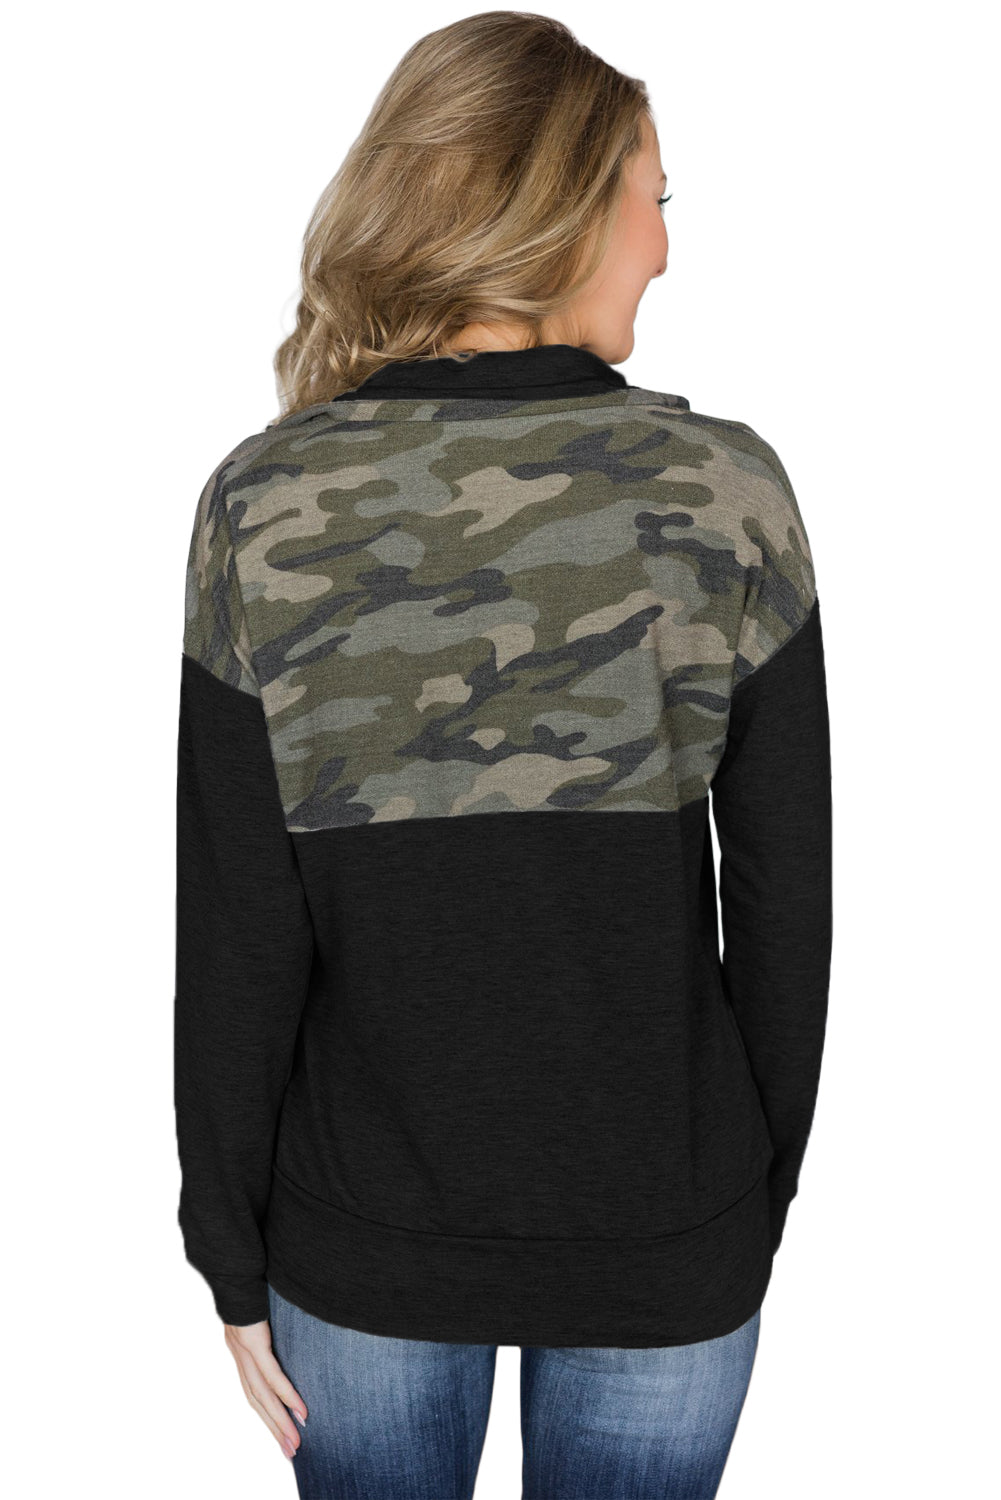 Camo Splice Black Kangaroo Pocket Zip Collar Sweatshirt